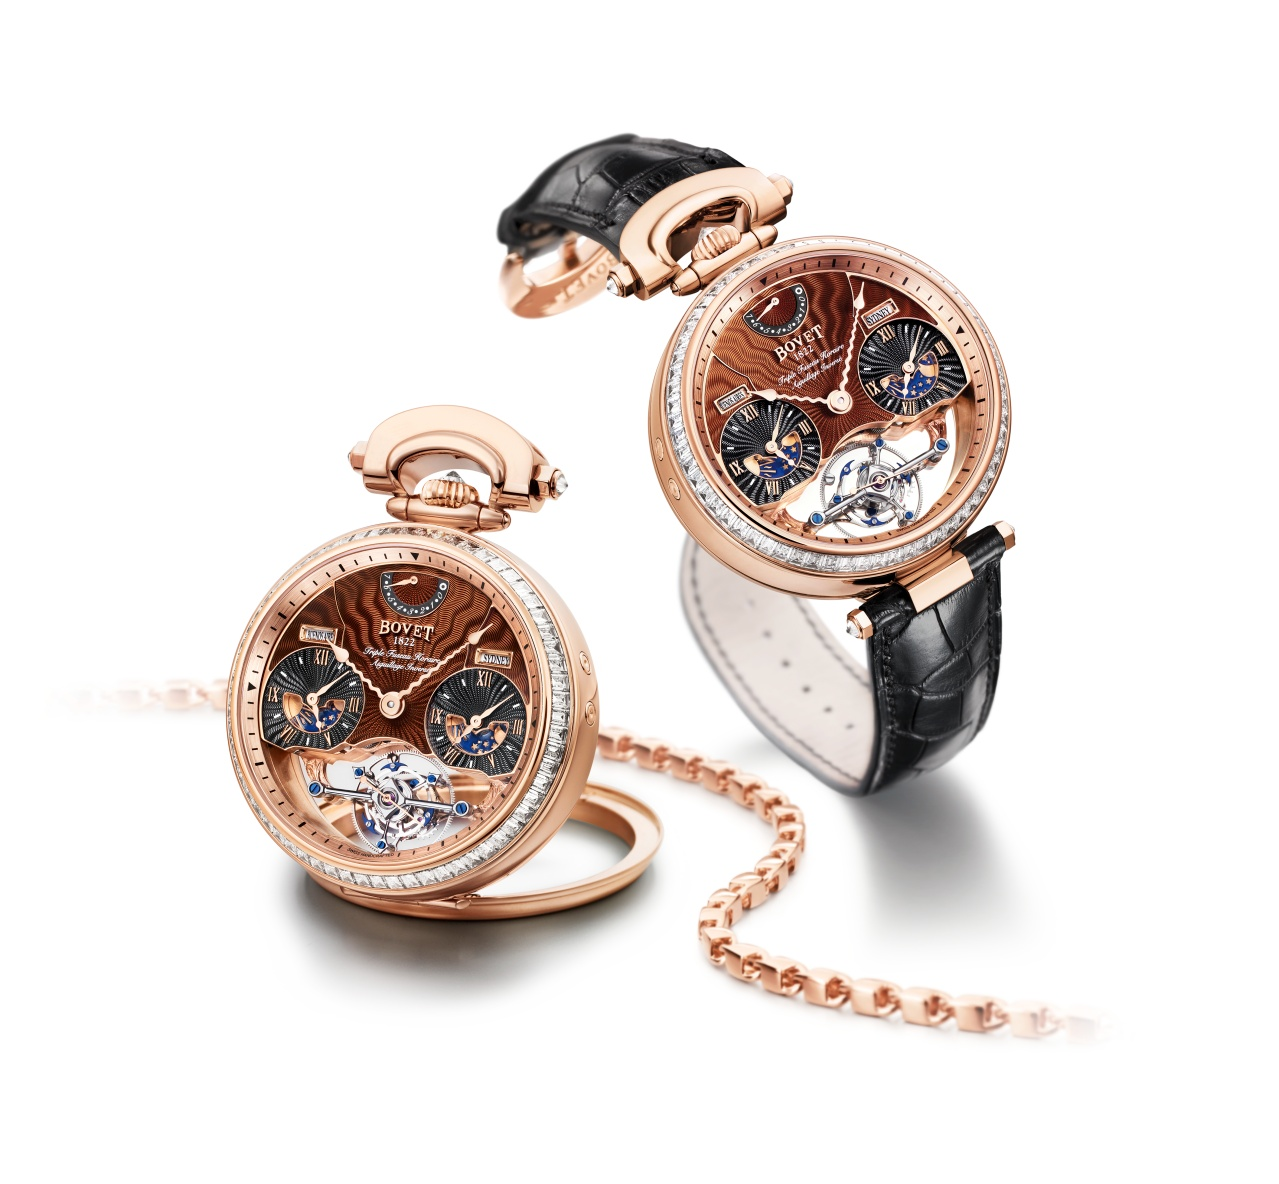 Bovet Watch   Amadeo Fleurier Grandes Complications   Ref. Nr.  AIRS501-SBI    Call 312-944-3100  | For Availability